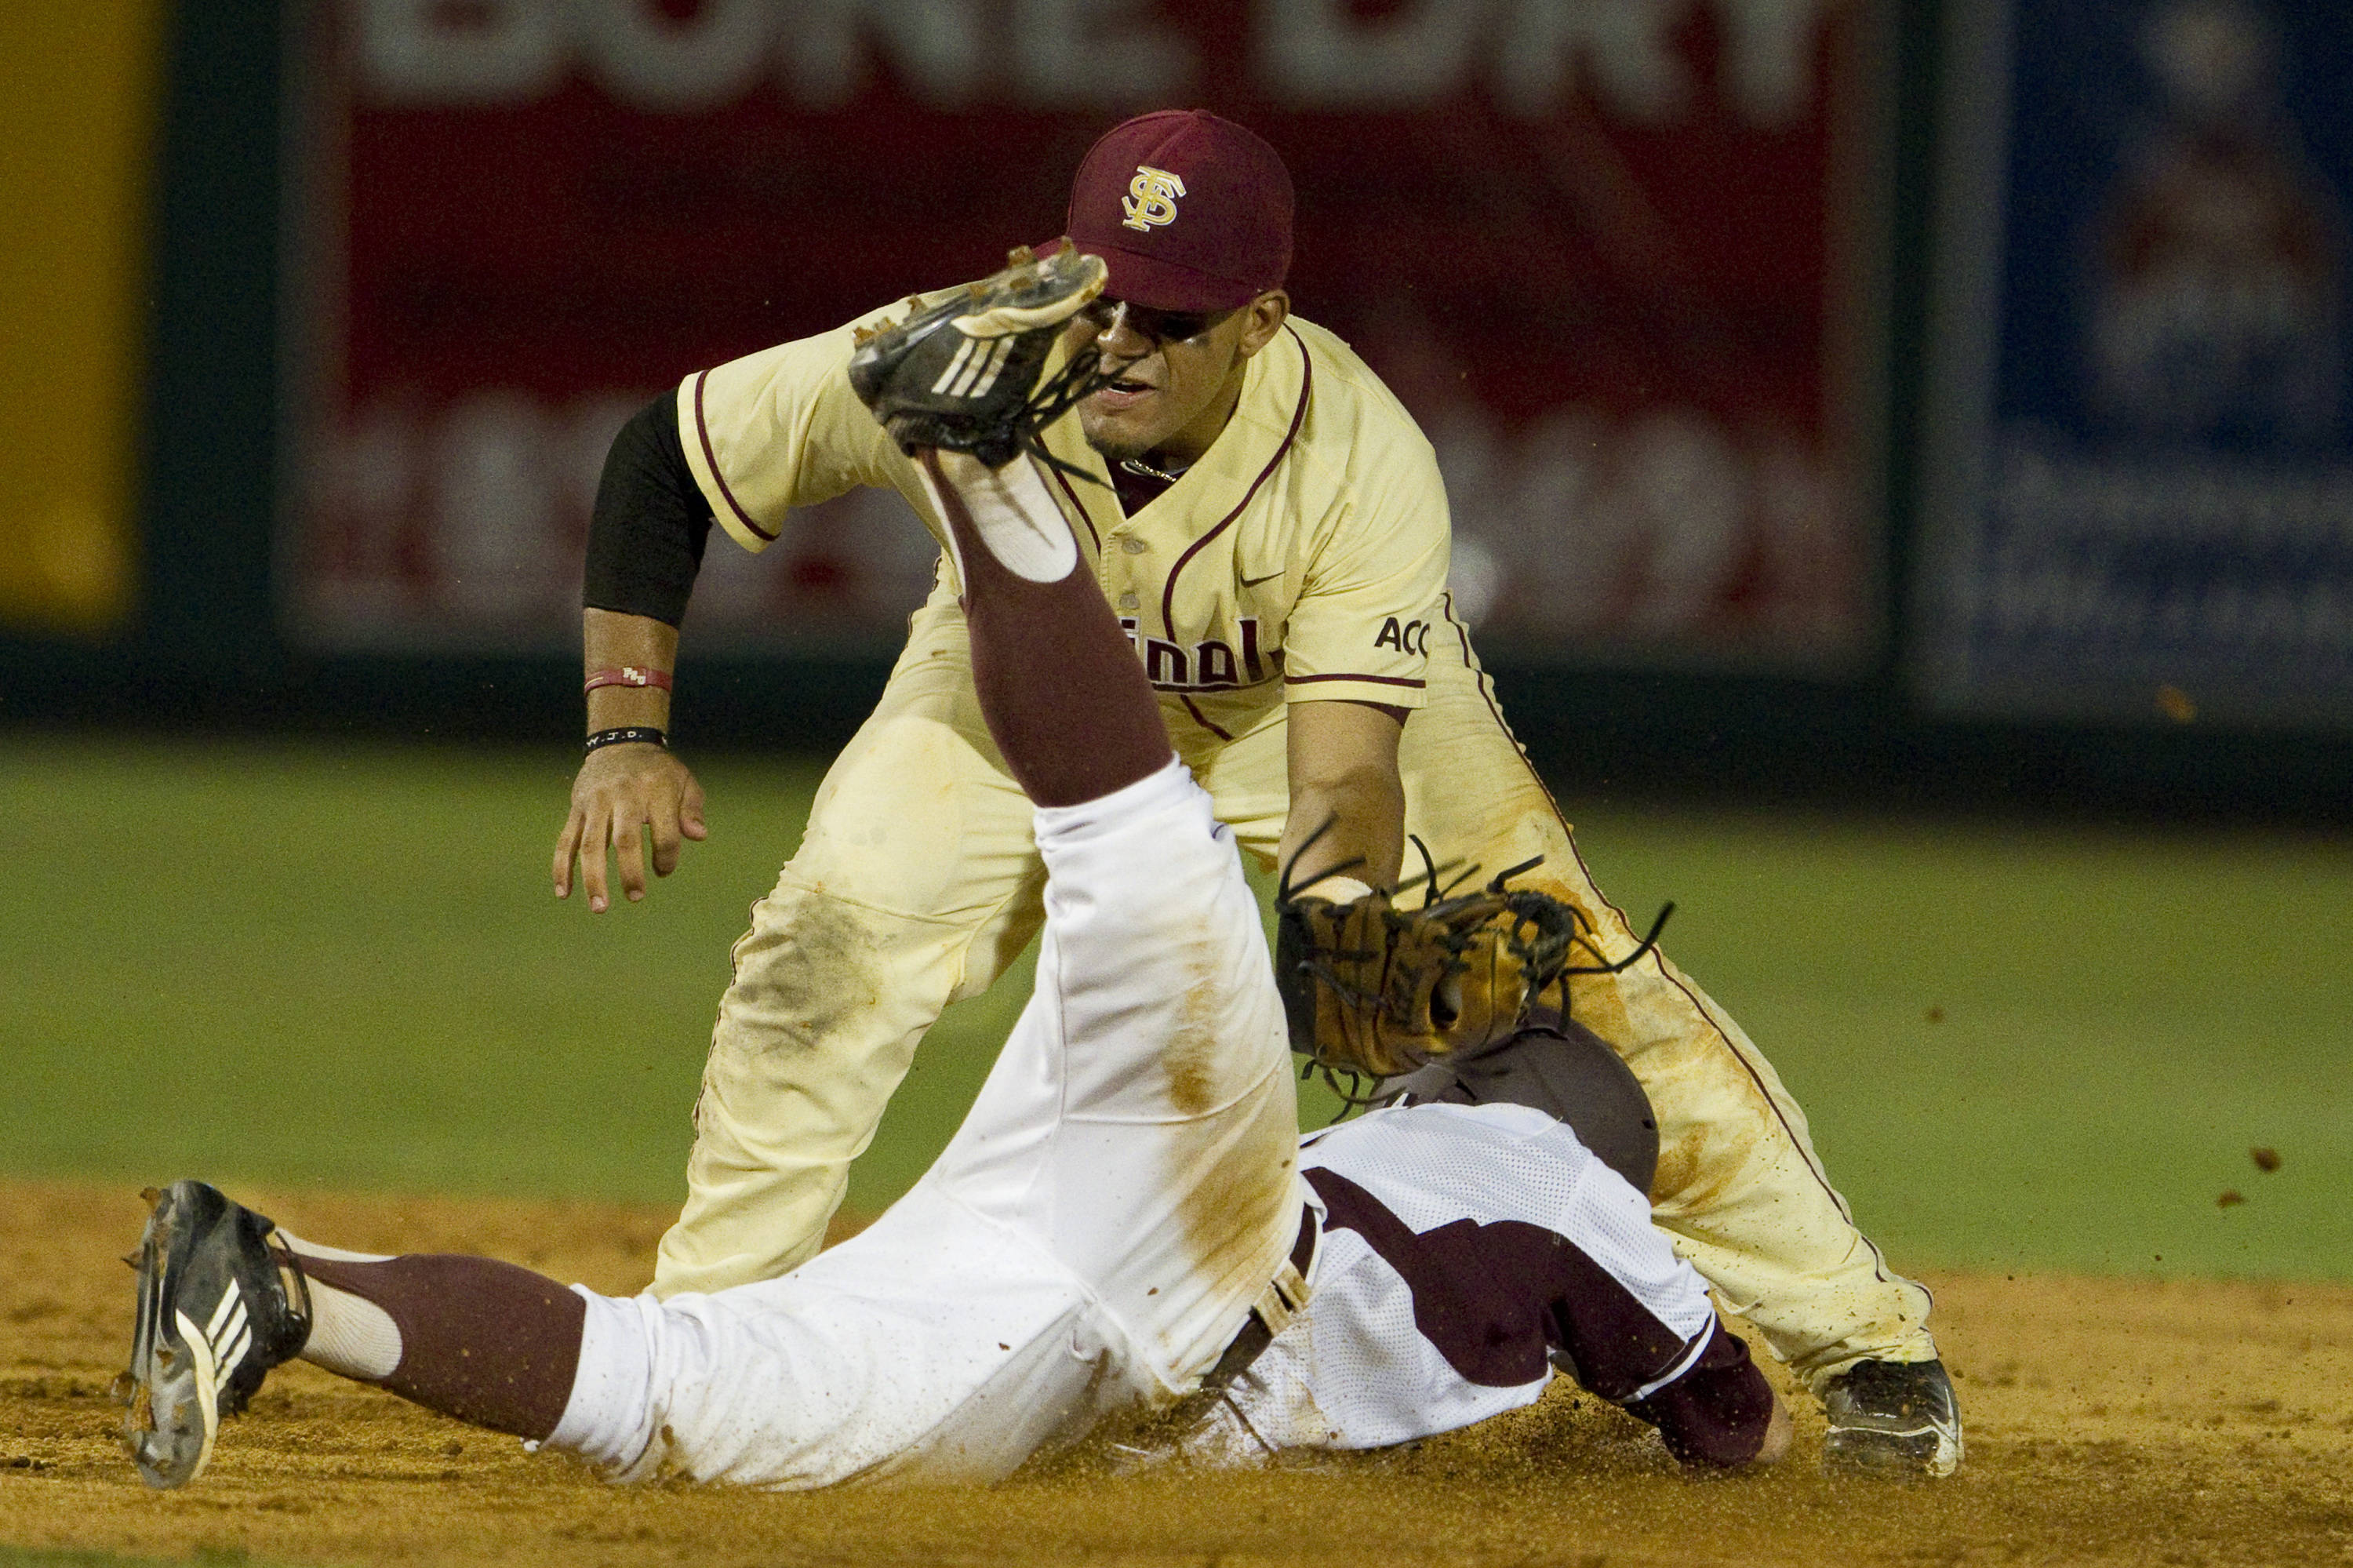 Devon Travis (8) attempts to tag out a runner at second.